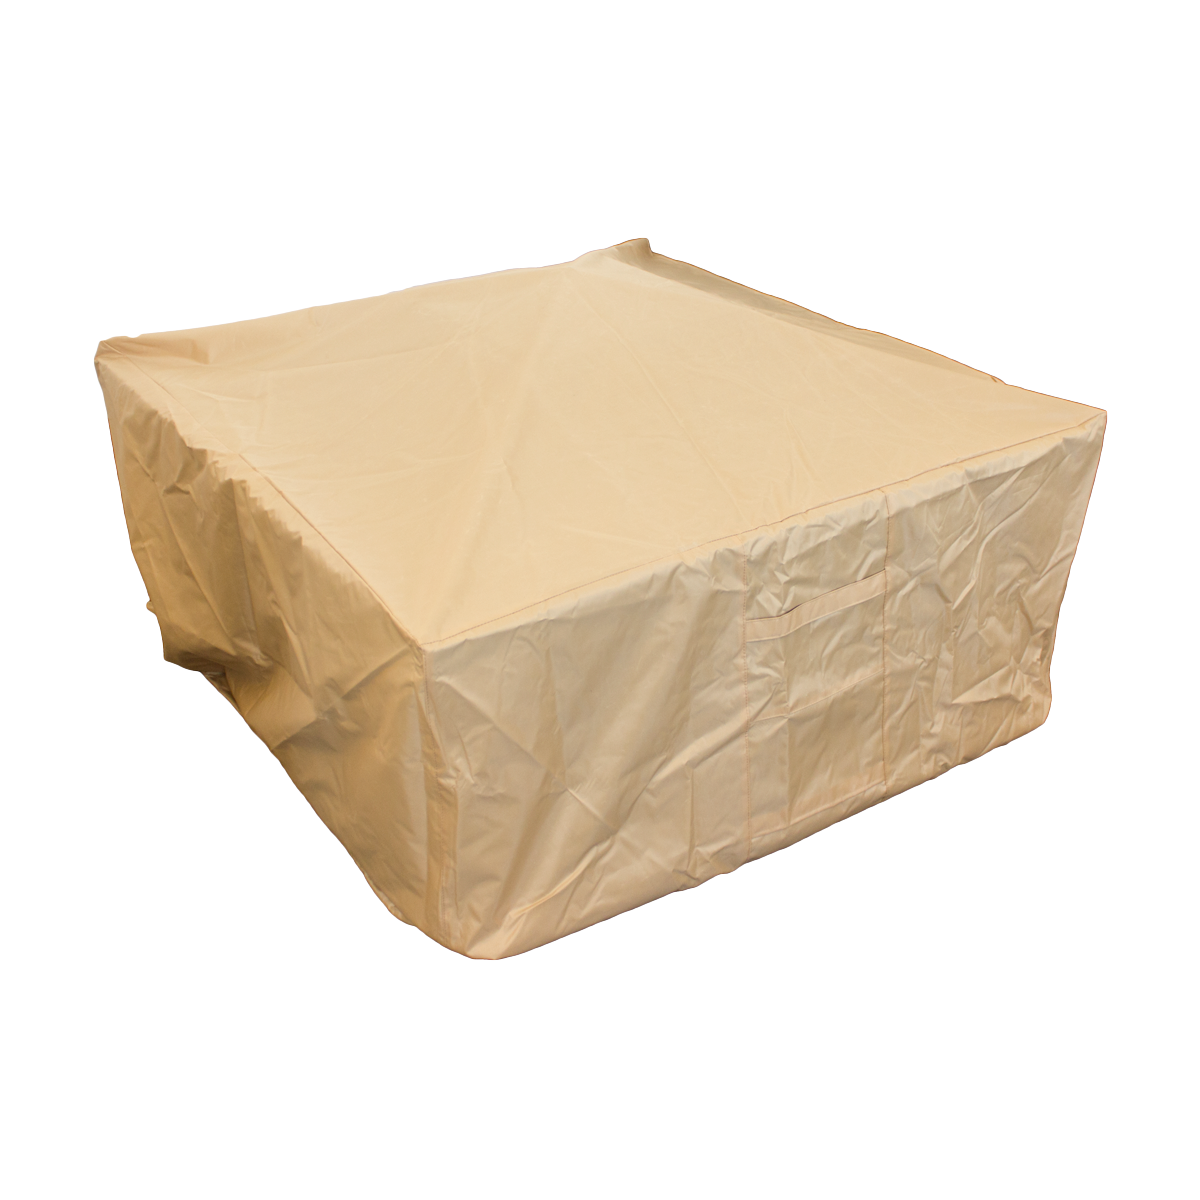 Hiland Heavy Duty Waterproof Cover for Square Wood Burning Fire Pit